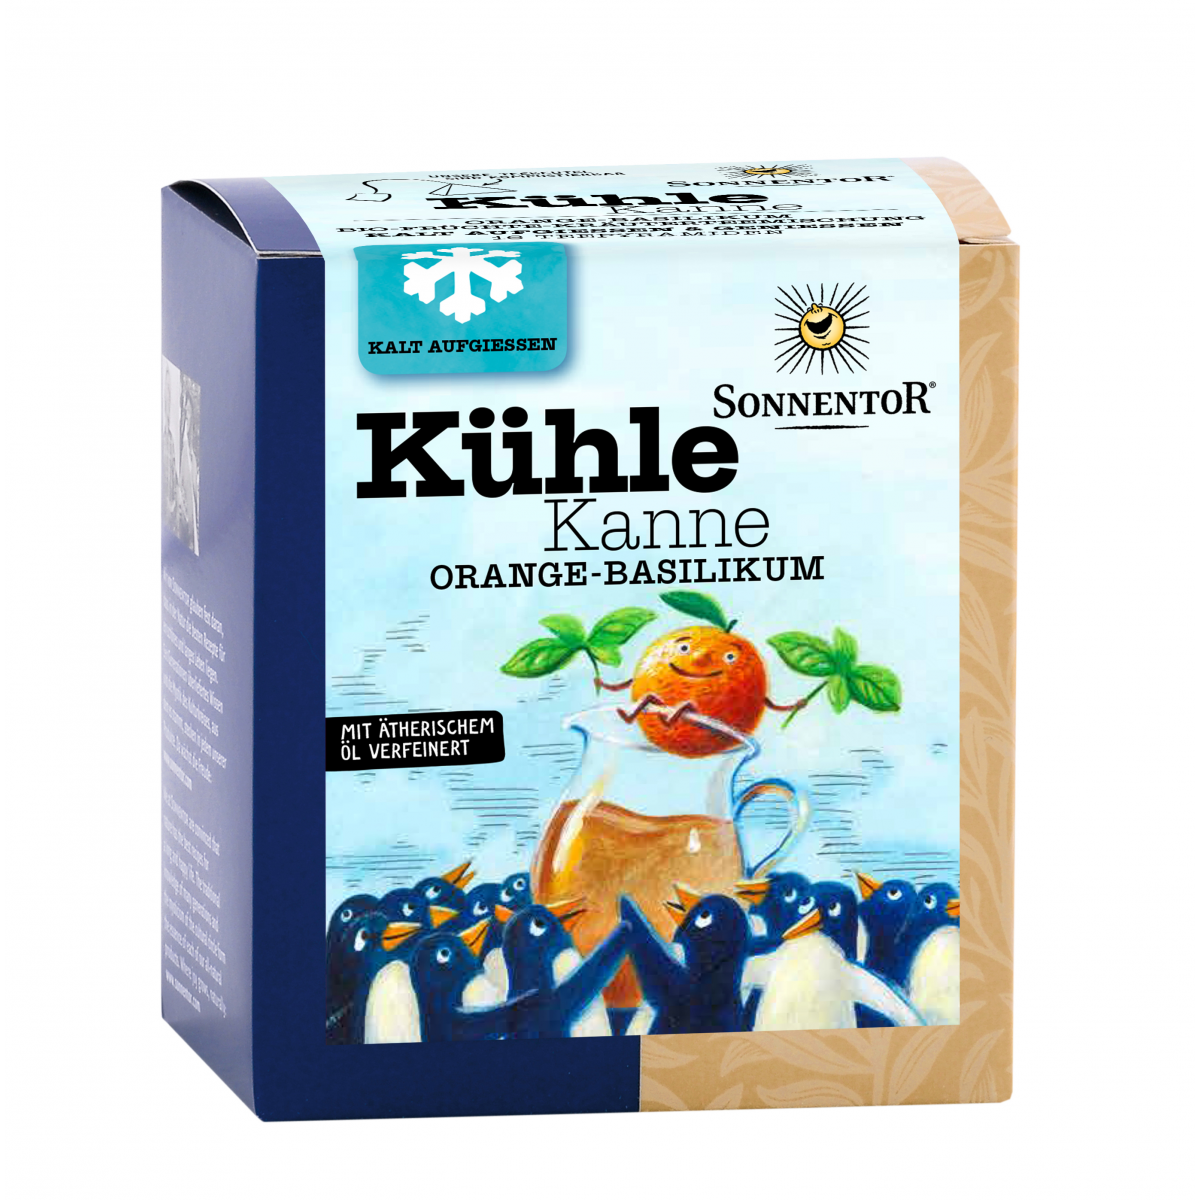 Kühle Kanne Orange-Basilikum Tee